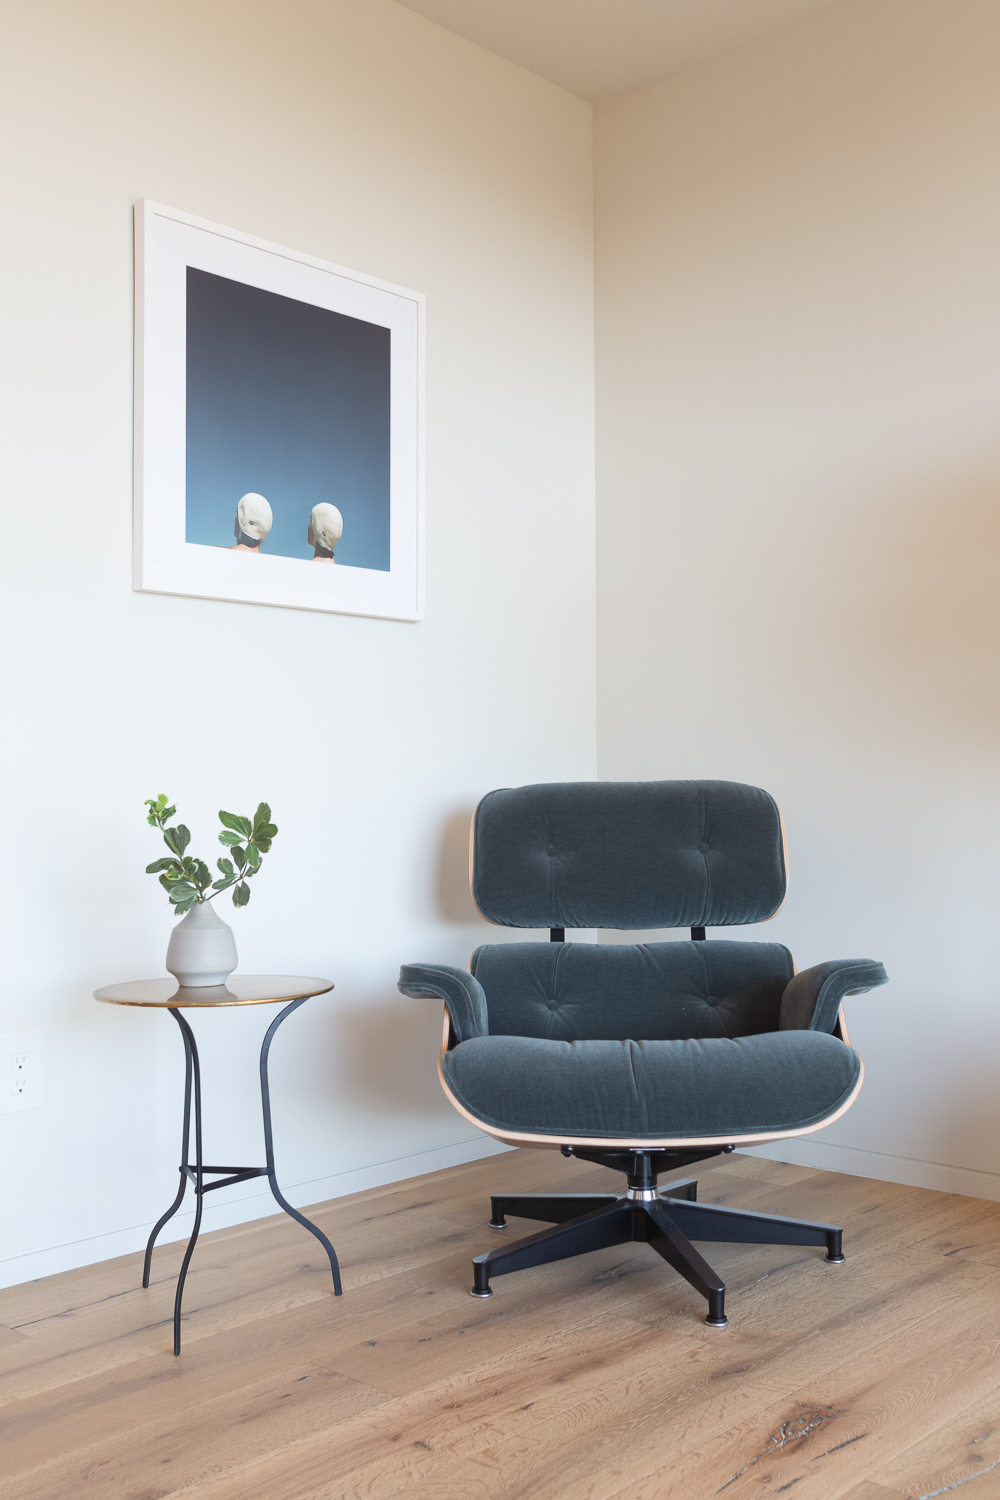 - design highlightsThe home includes collectible Scandinavian mid century furniture including pieces by Poul Kjaeholm, Niels O. Moller, Piet Hein and Bengt Ruda. Art curated by Tappan Collective and bedding by Parachute. All furniture, objects, art and accessories are available for purchase.